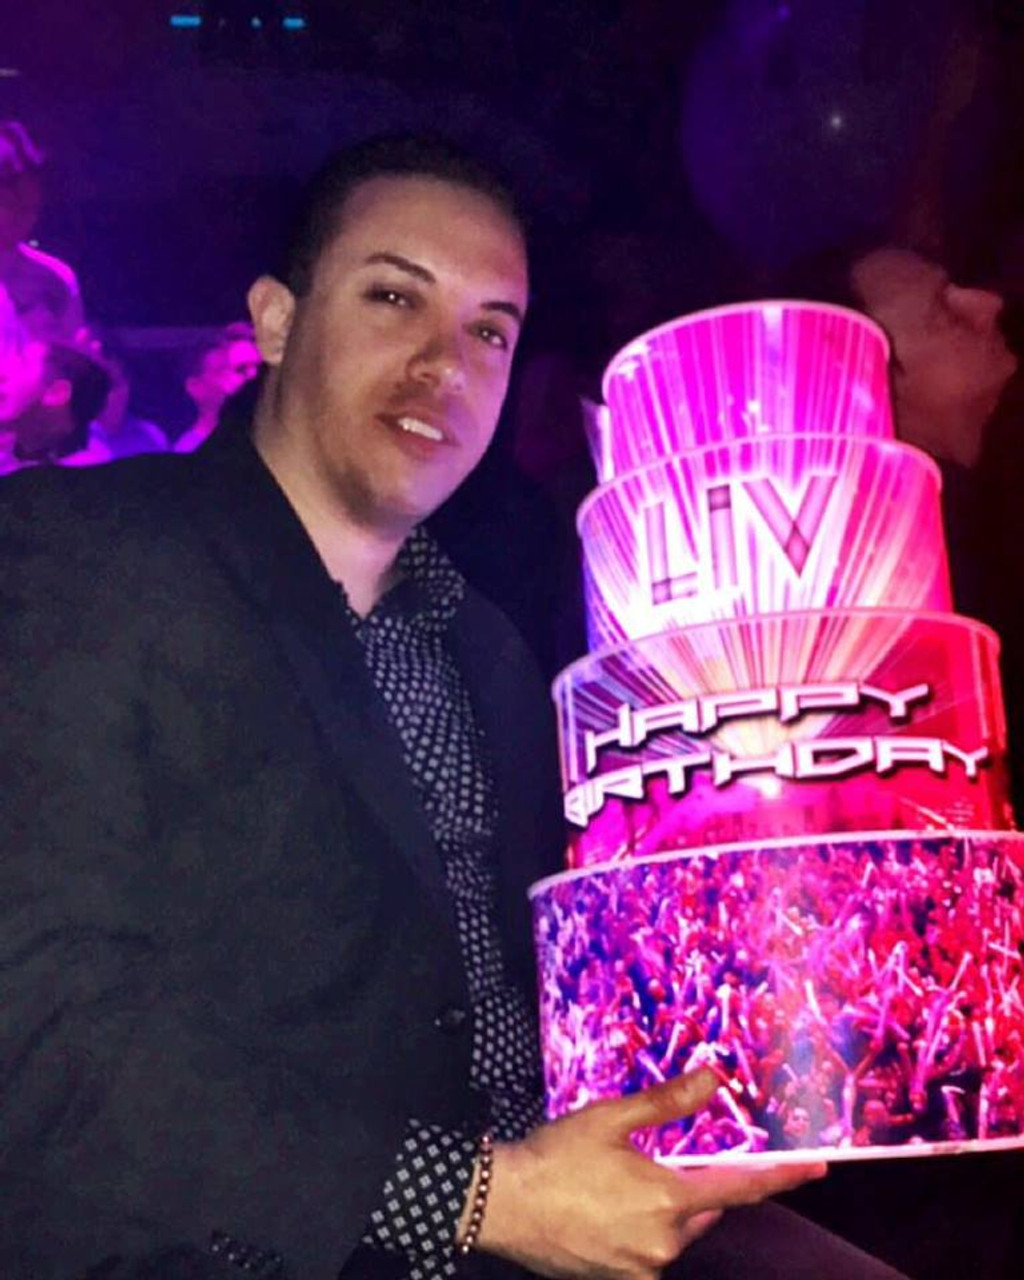 Light up Cake,LED cake, LED birthday Cake, LED wedding Cake, LED,wedding,VIP, bottle, Champagne, celebration,Miami